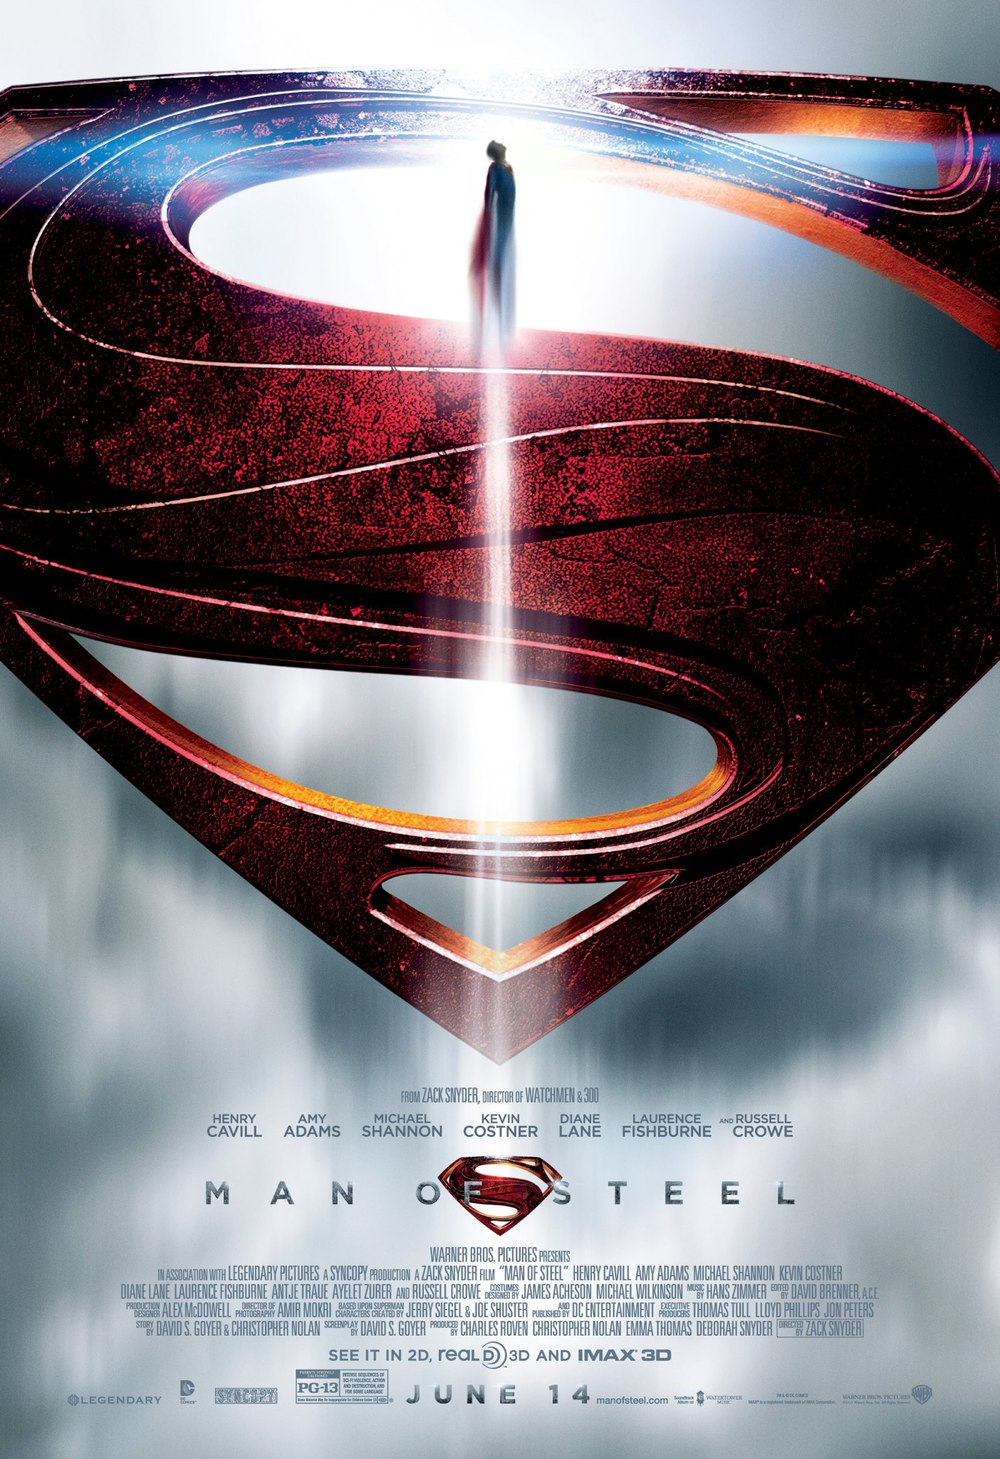 man-of-steel-poster-051013-01.jpg